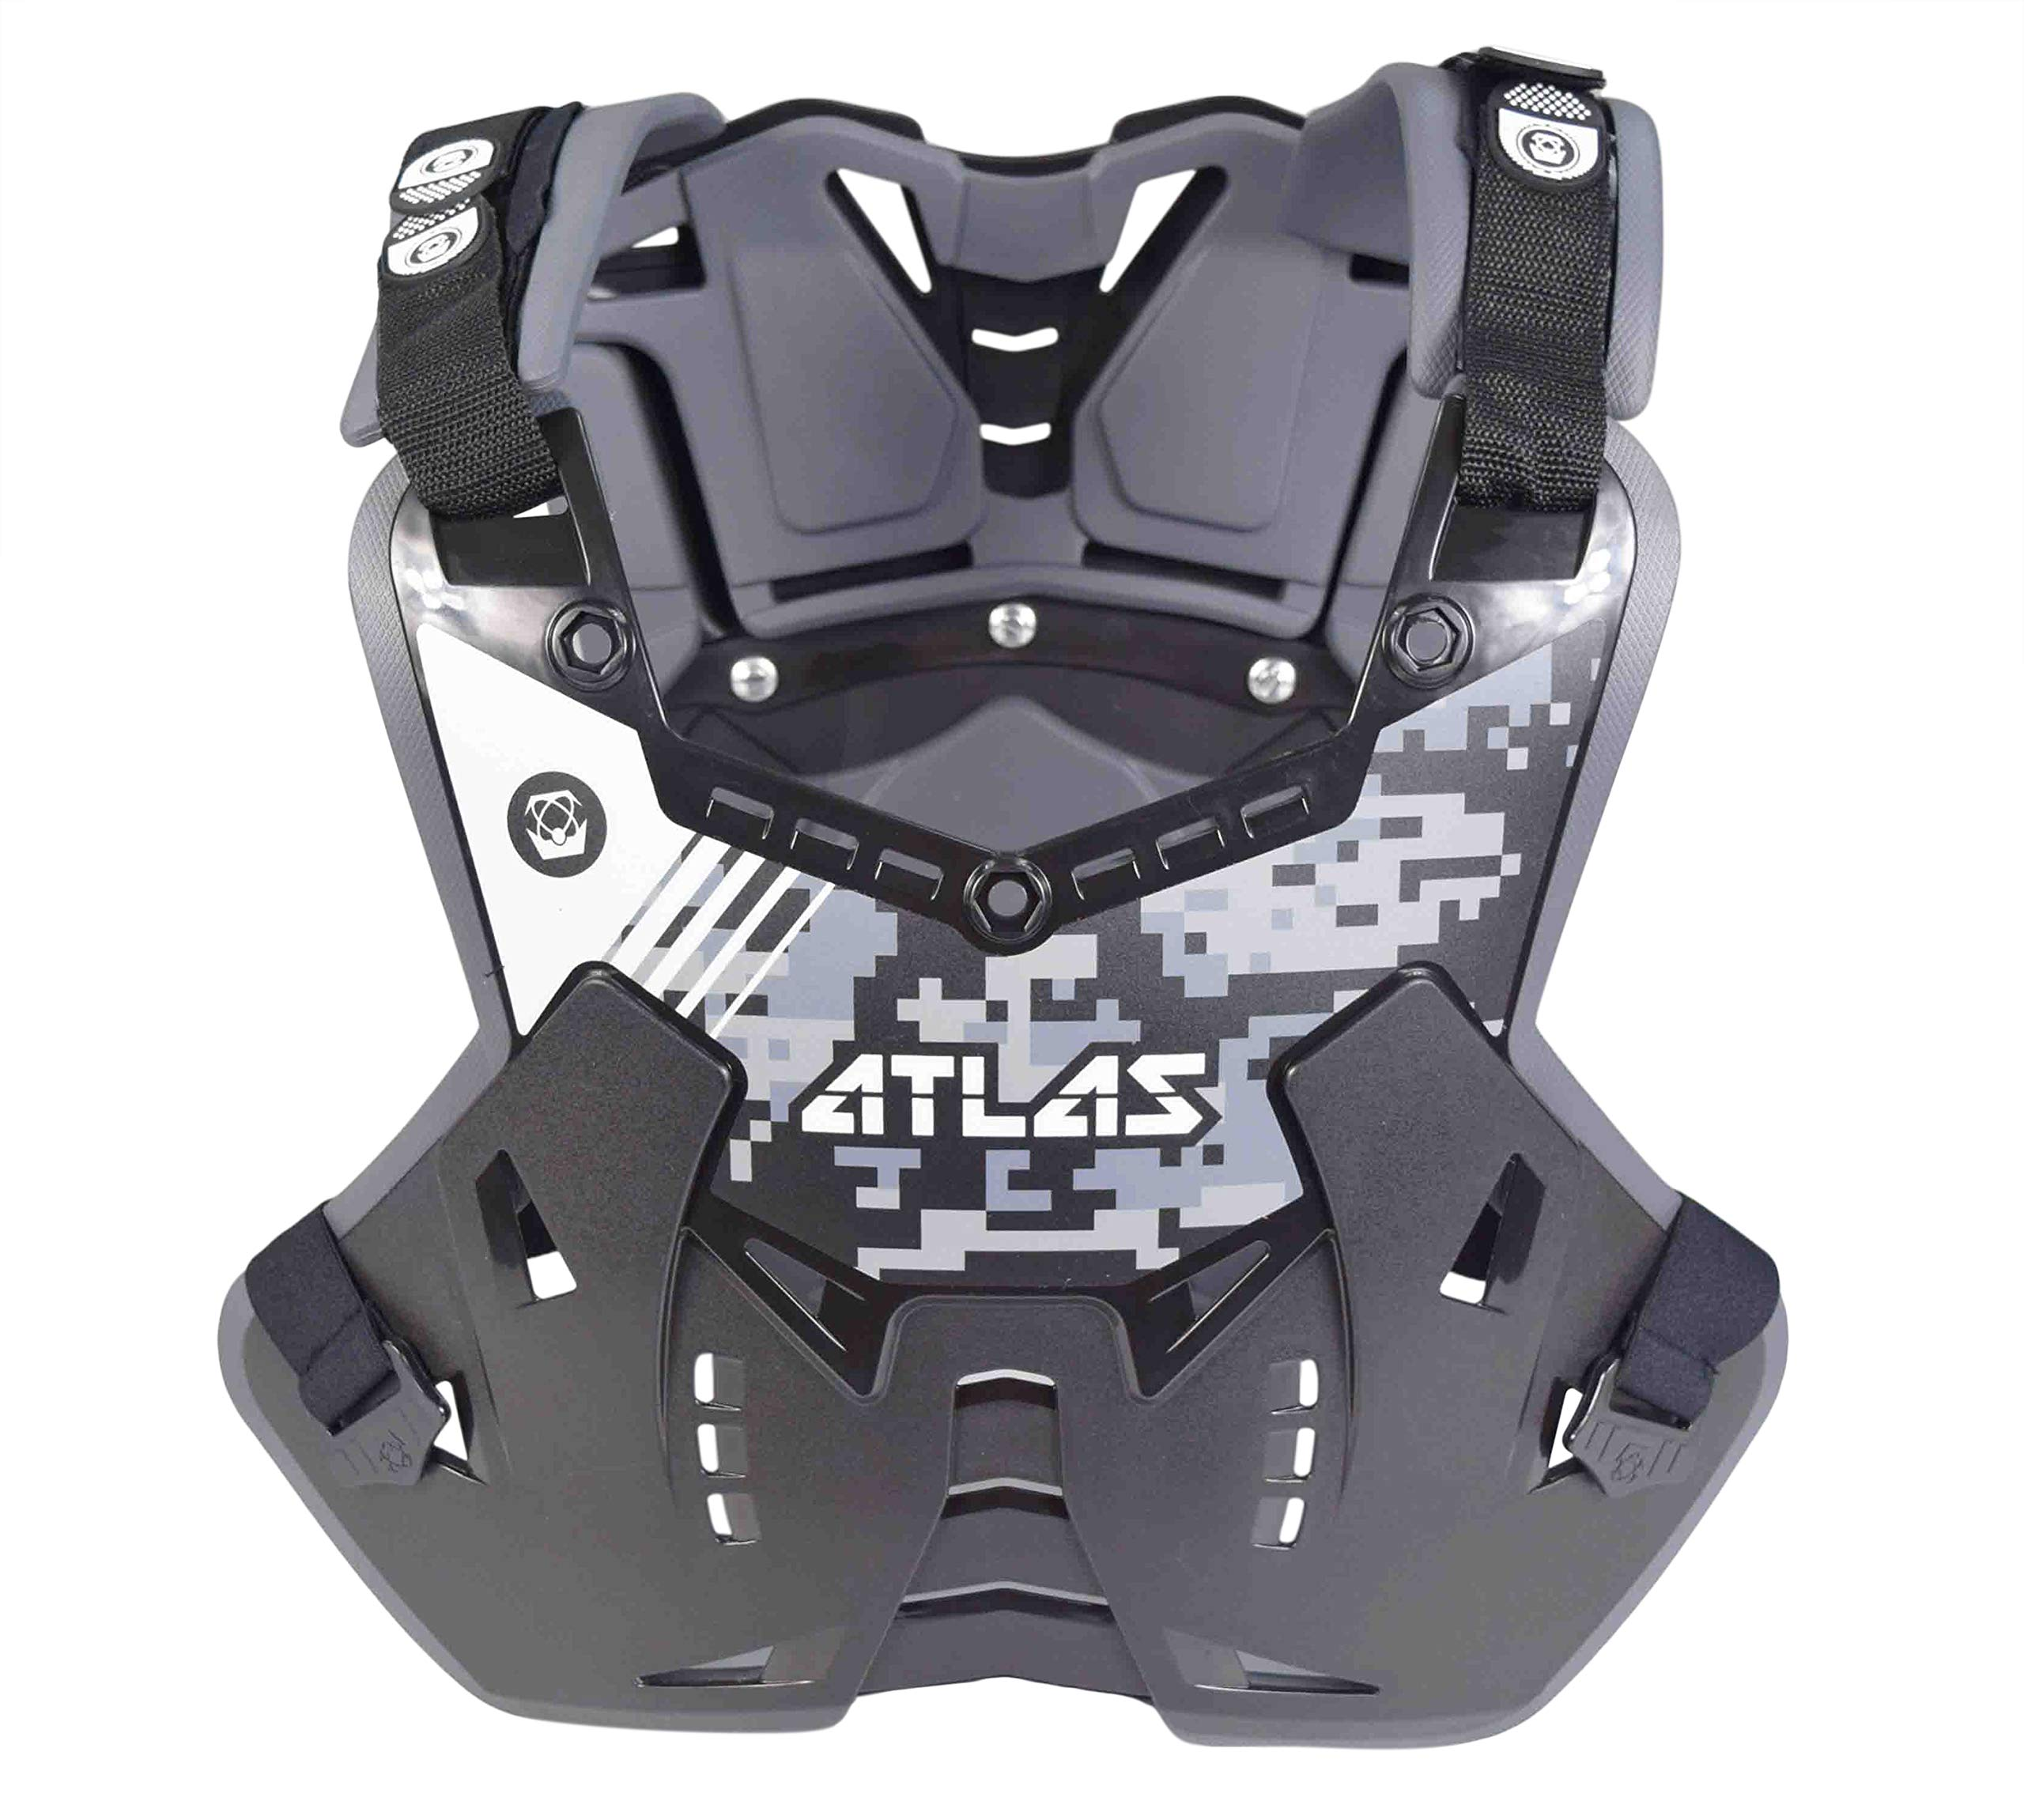 Atlas CPC-01-010 Defender Digital Stealth Chest and Back Protector Gray and Black Digital Camo - Adult Medium